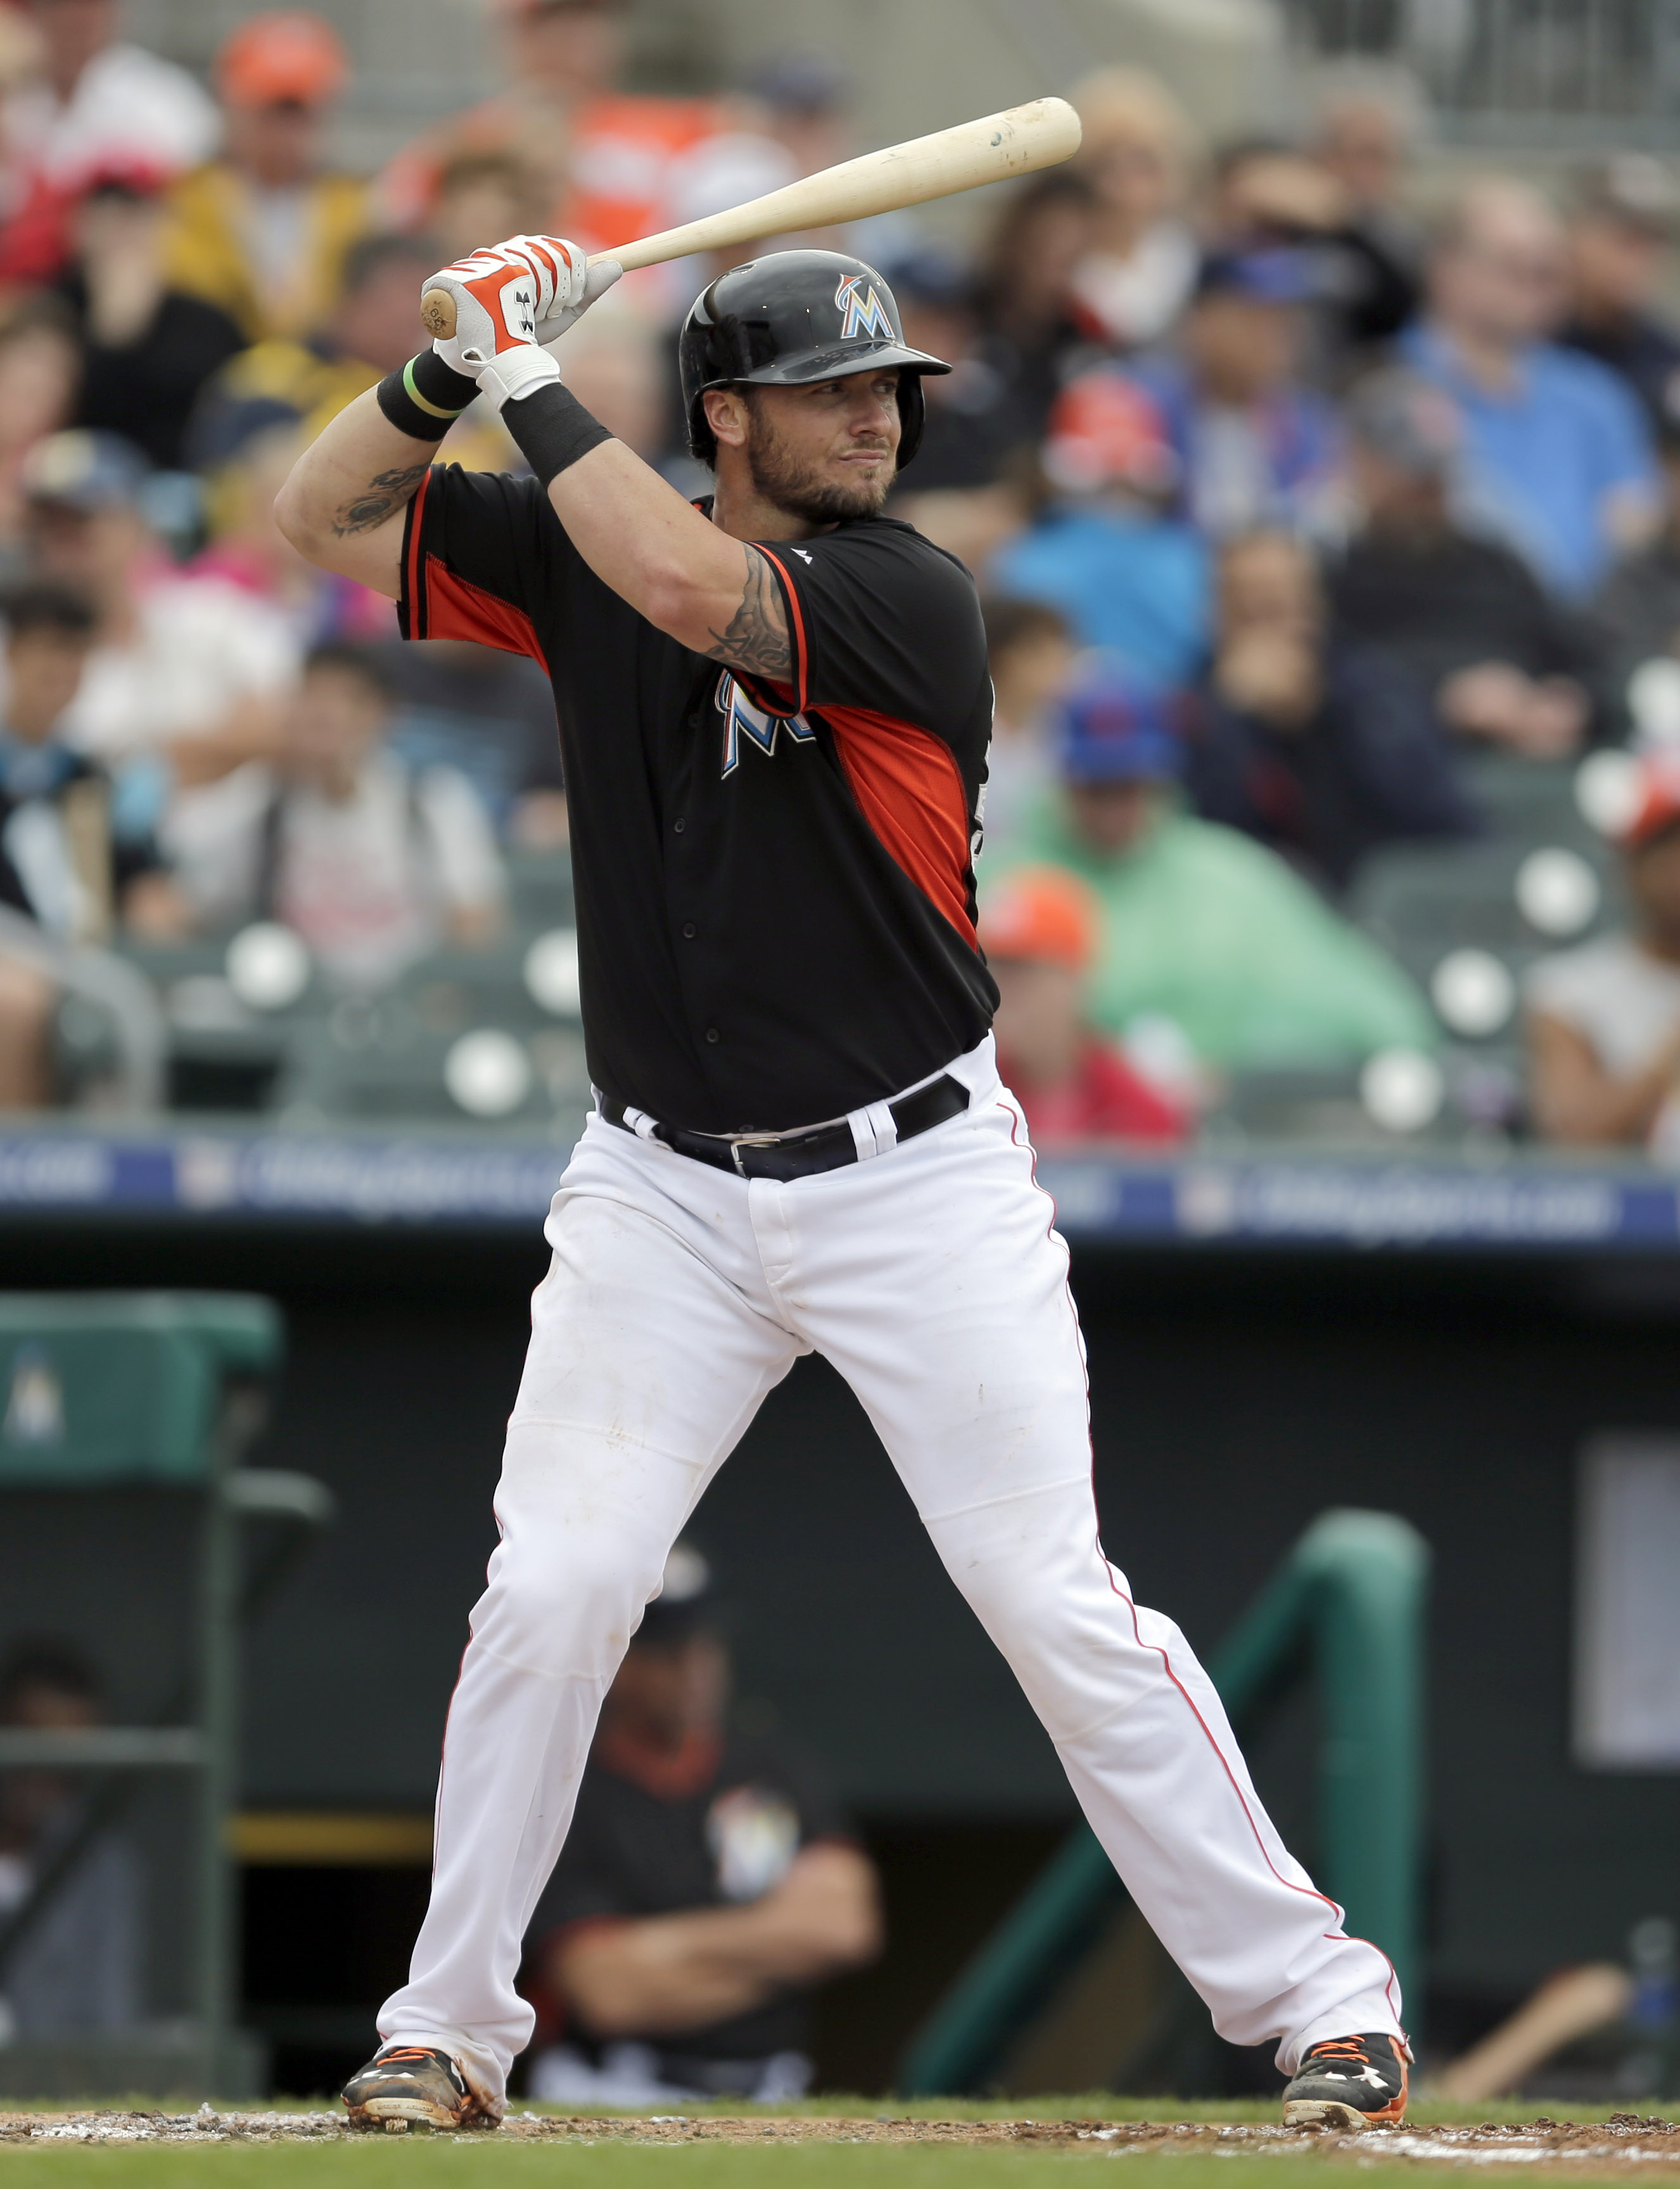 Miami Marlins' Jarrod Saltalamacchia bats during the second inning of an exhibition spring training baseball game against the New York Mets Saturday, March 7, 2015, in Jupiter, Fla. (AP Photo/Jeff Roberson)